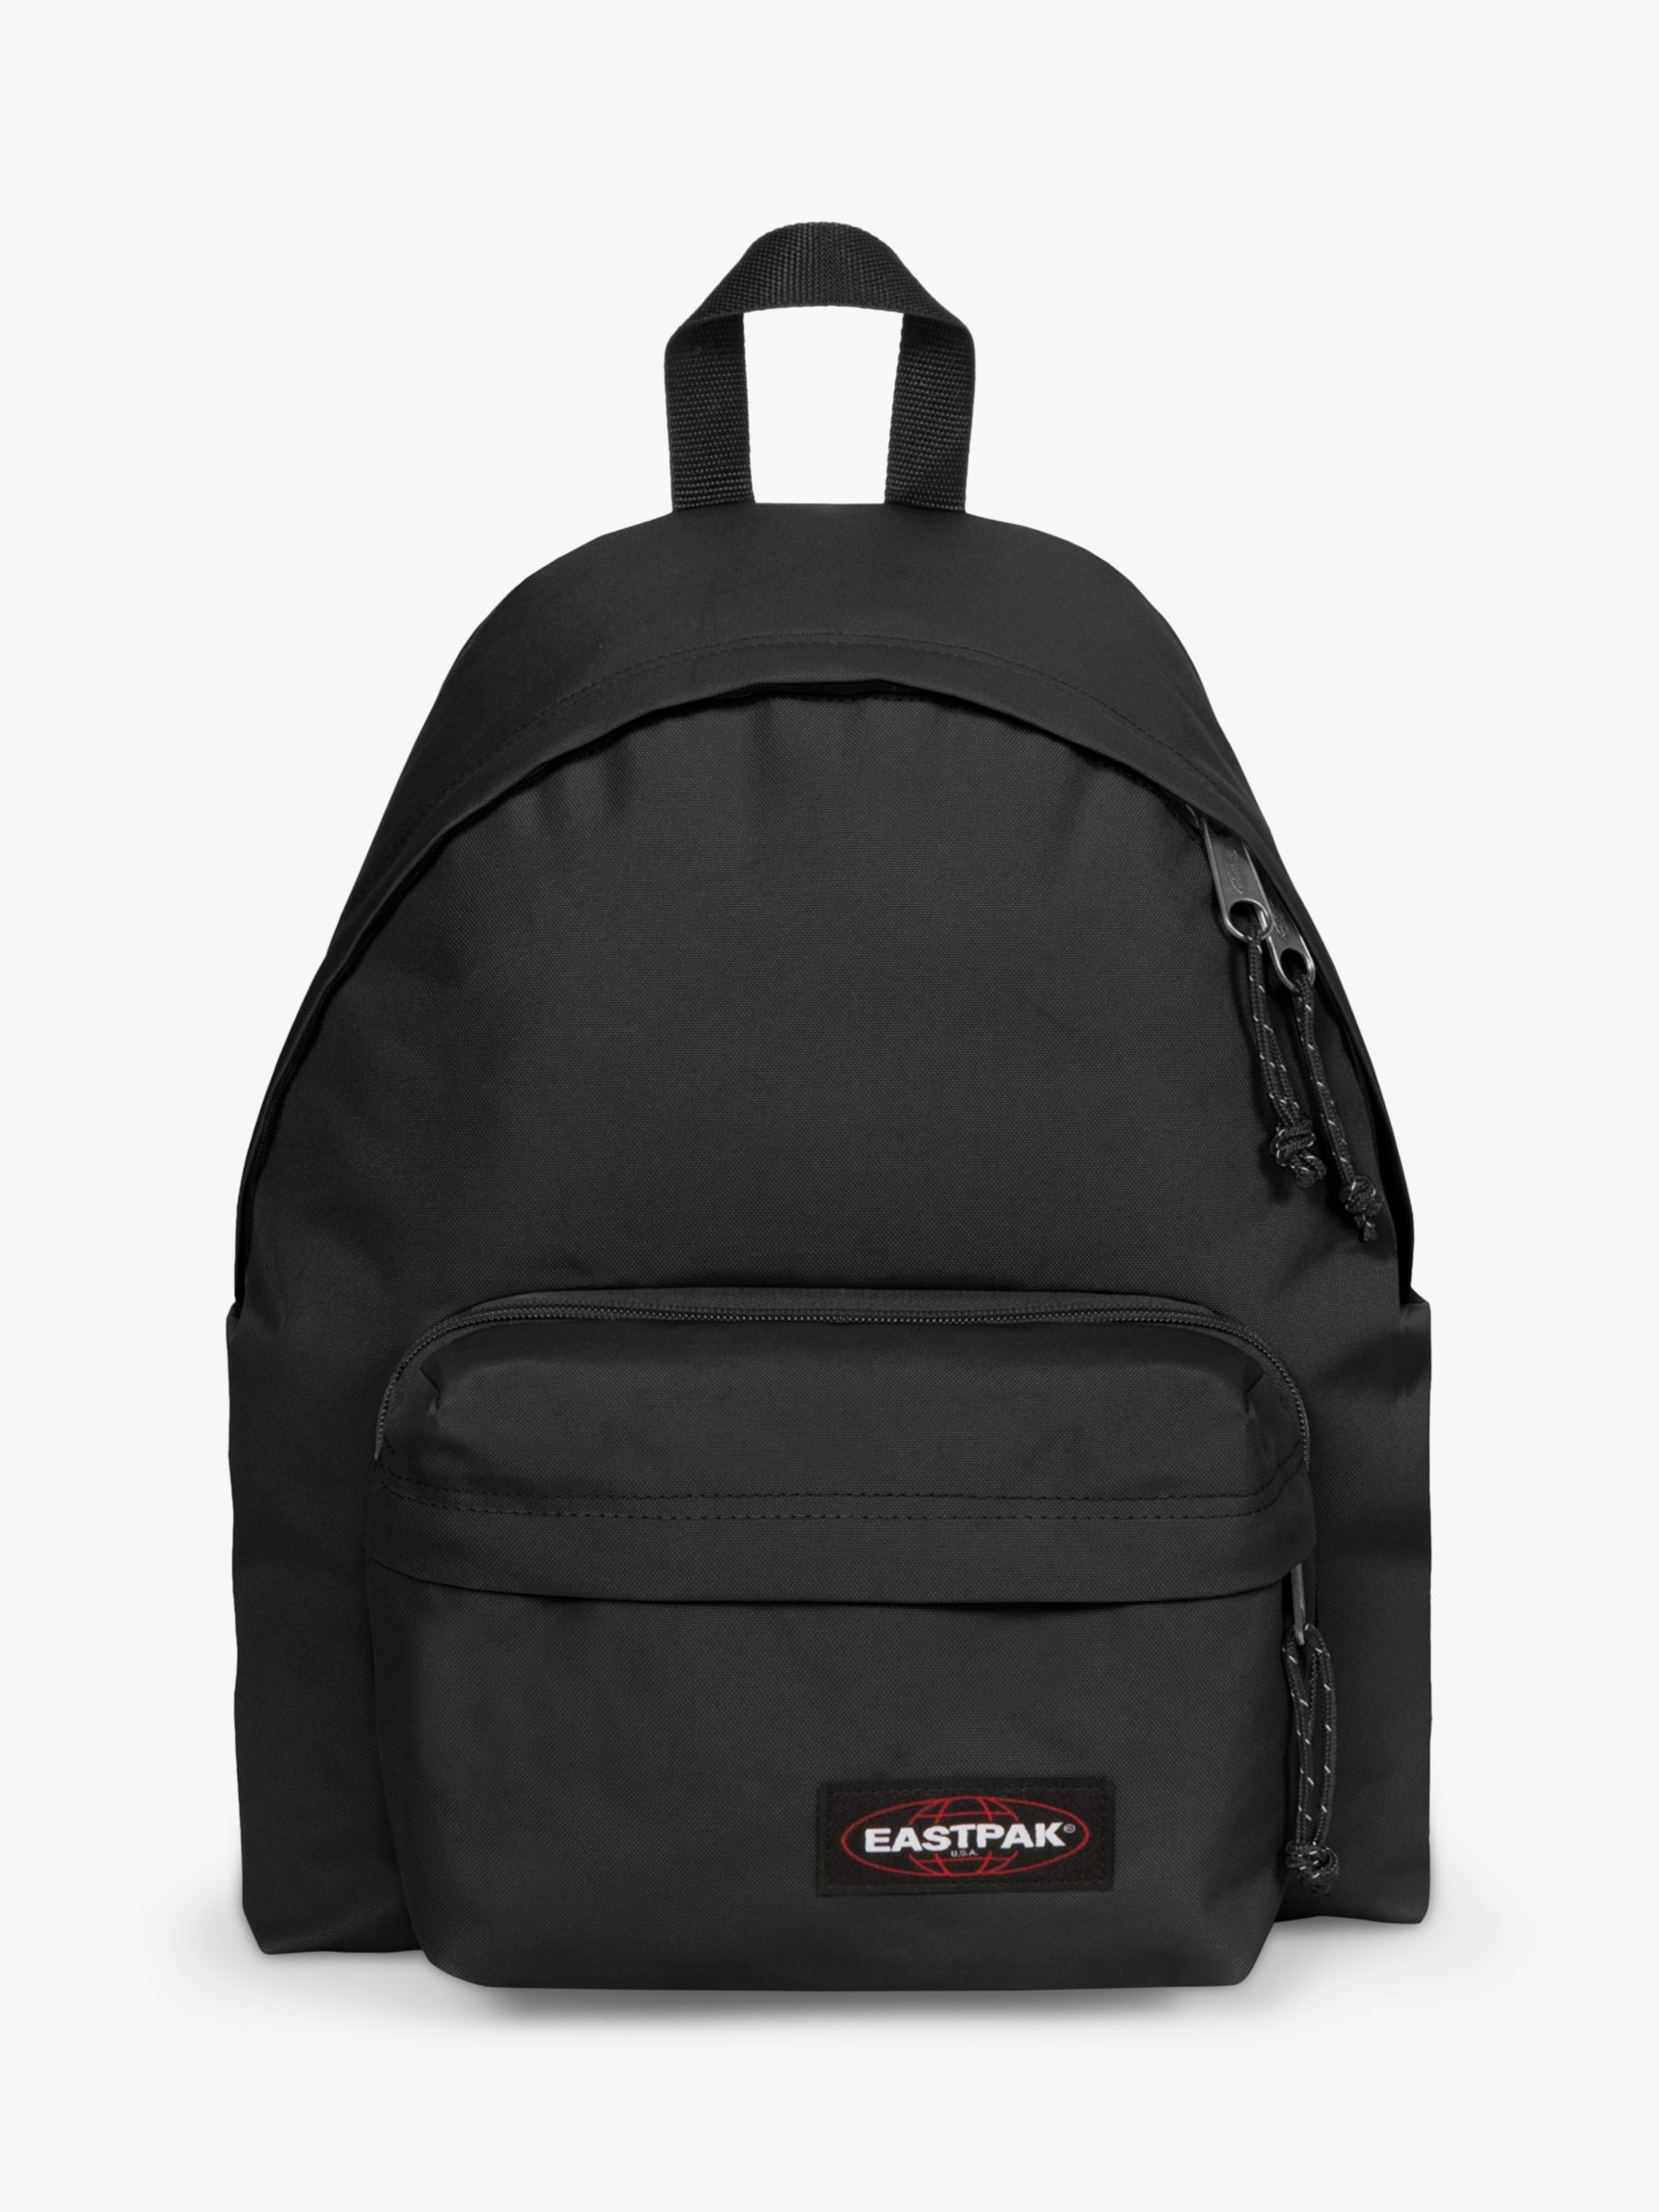 Eastpak Eastpak Padded Travell'r Backpack, Black